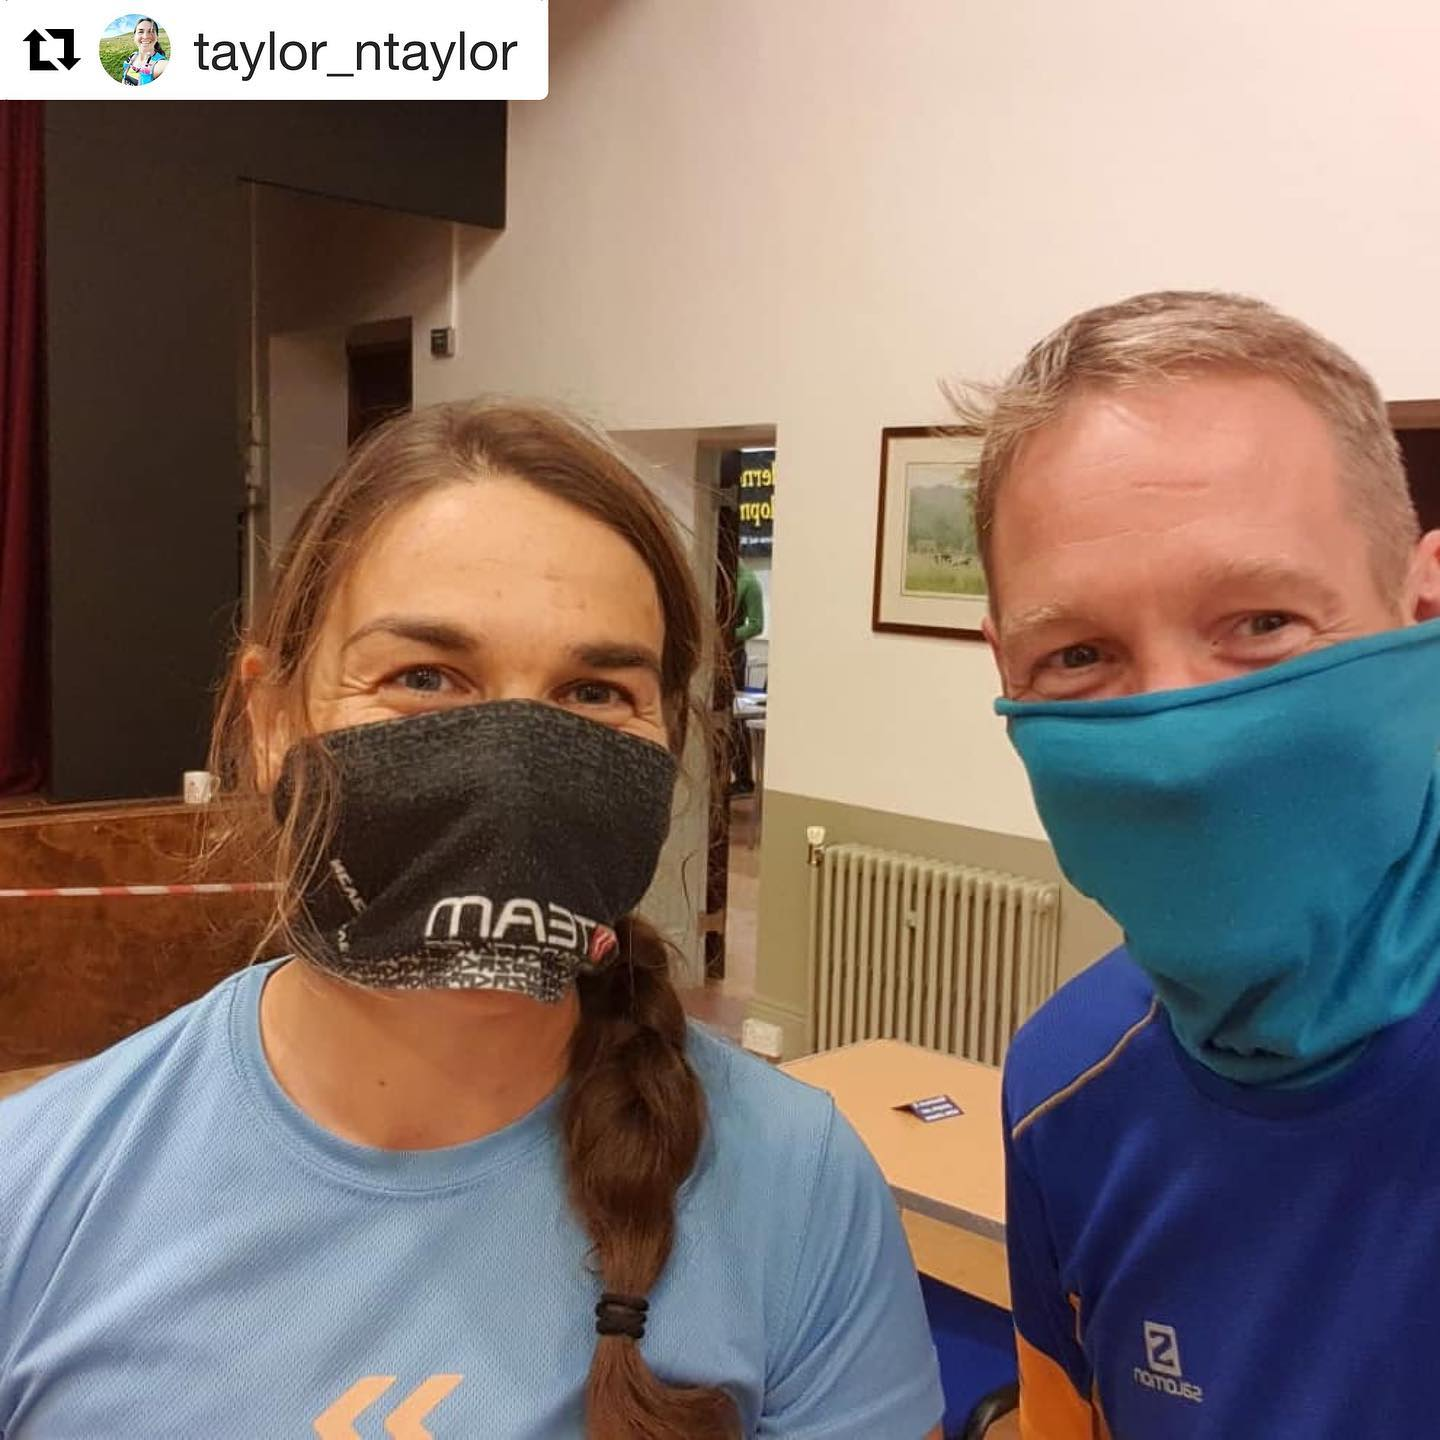 Lovely to see these photos from @taylor_ntaylor – great to have you along! @peakdistrictchallenge…